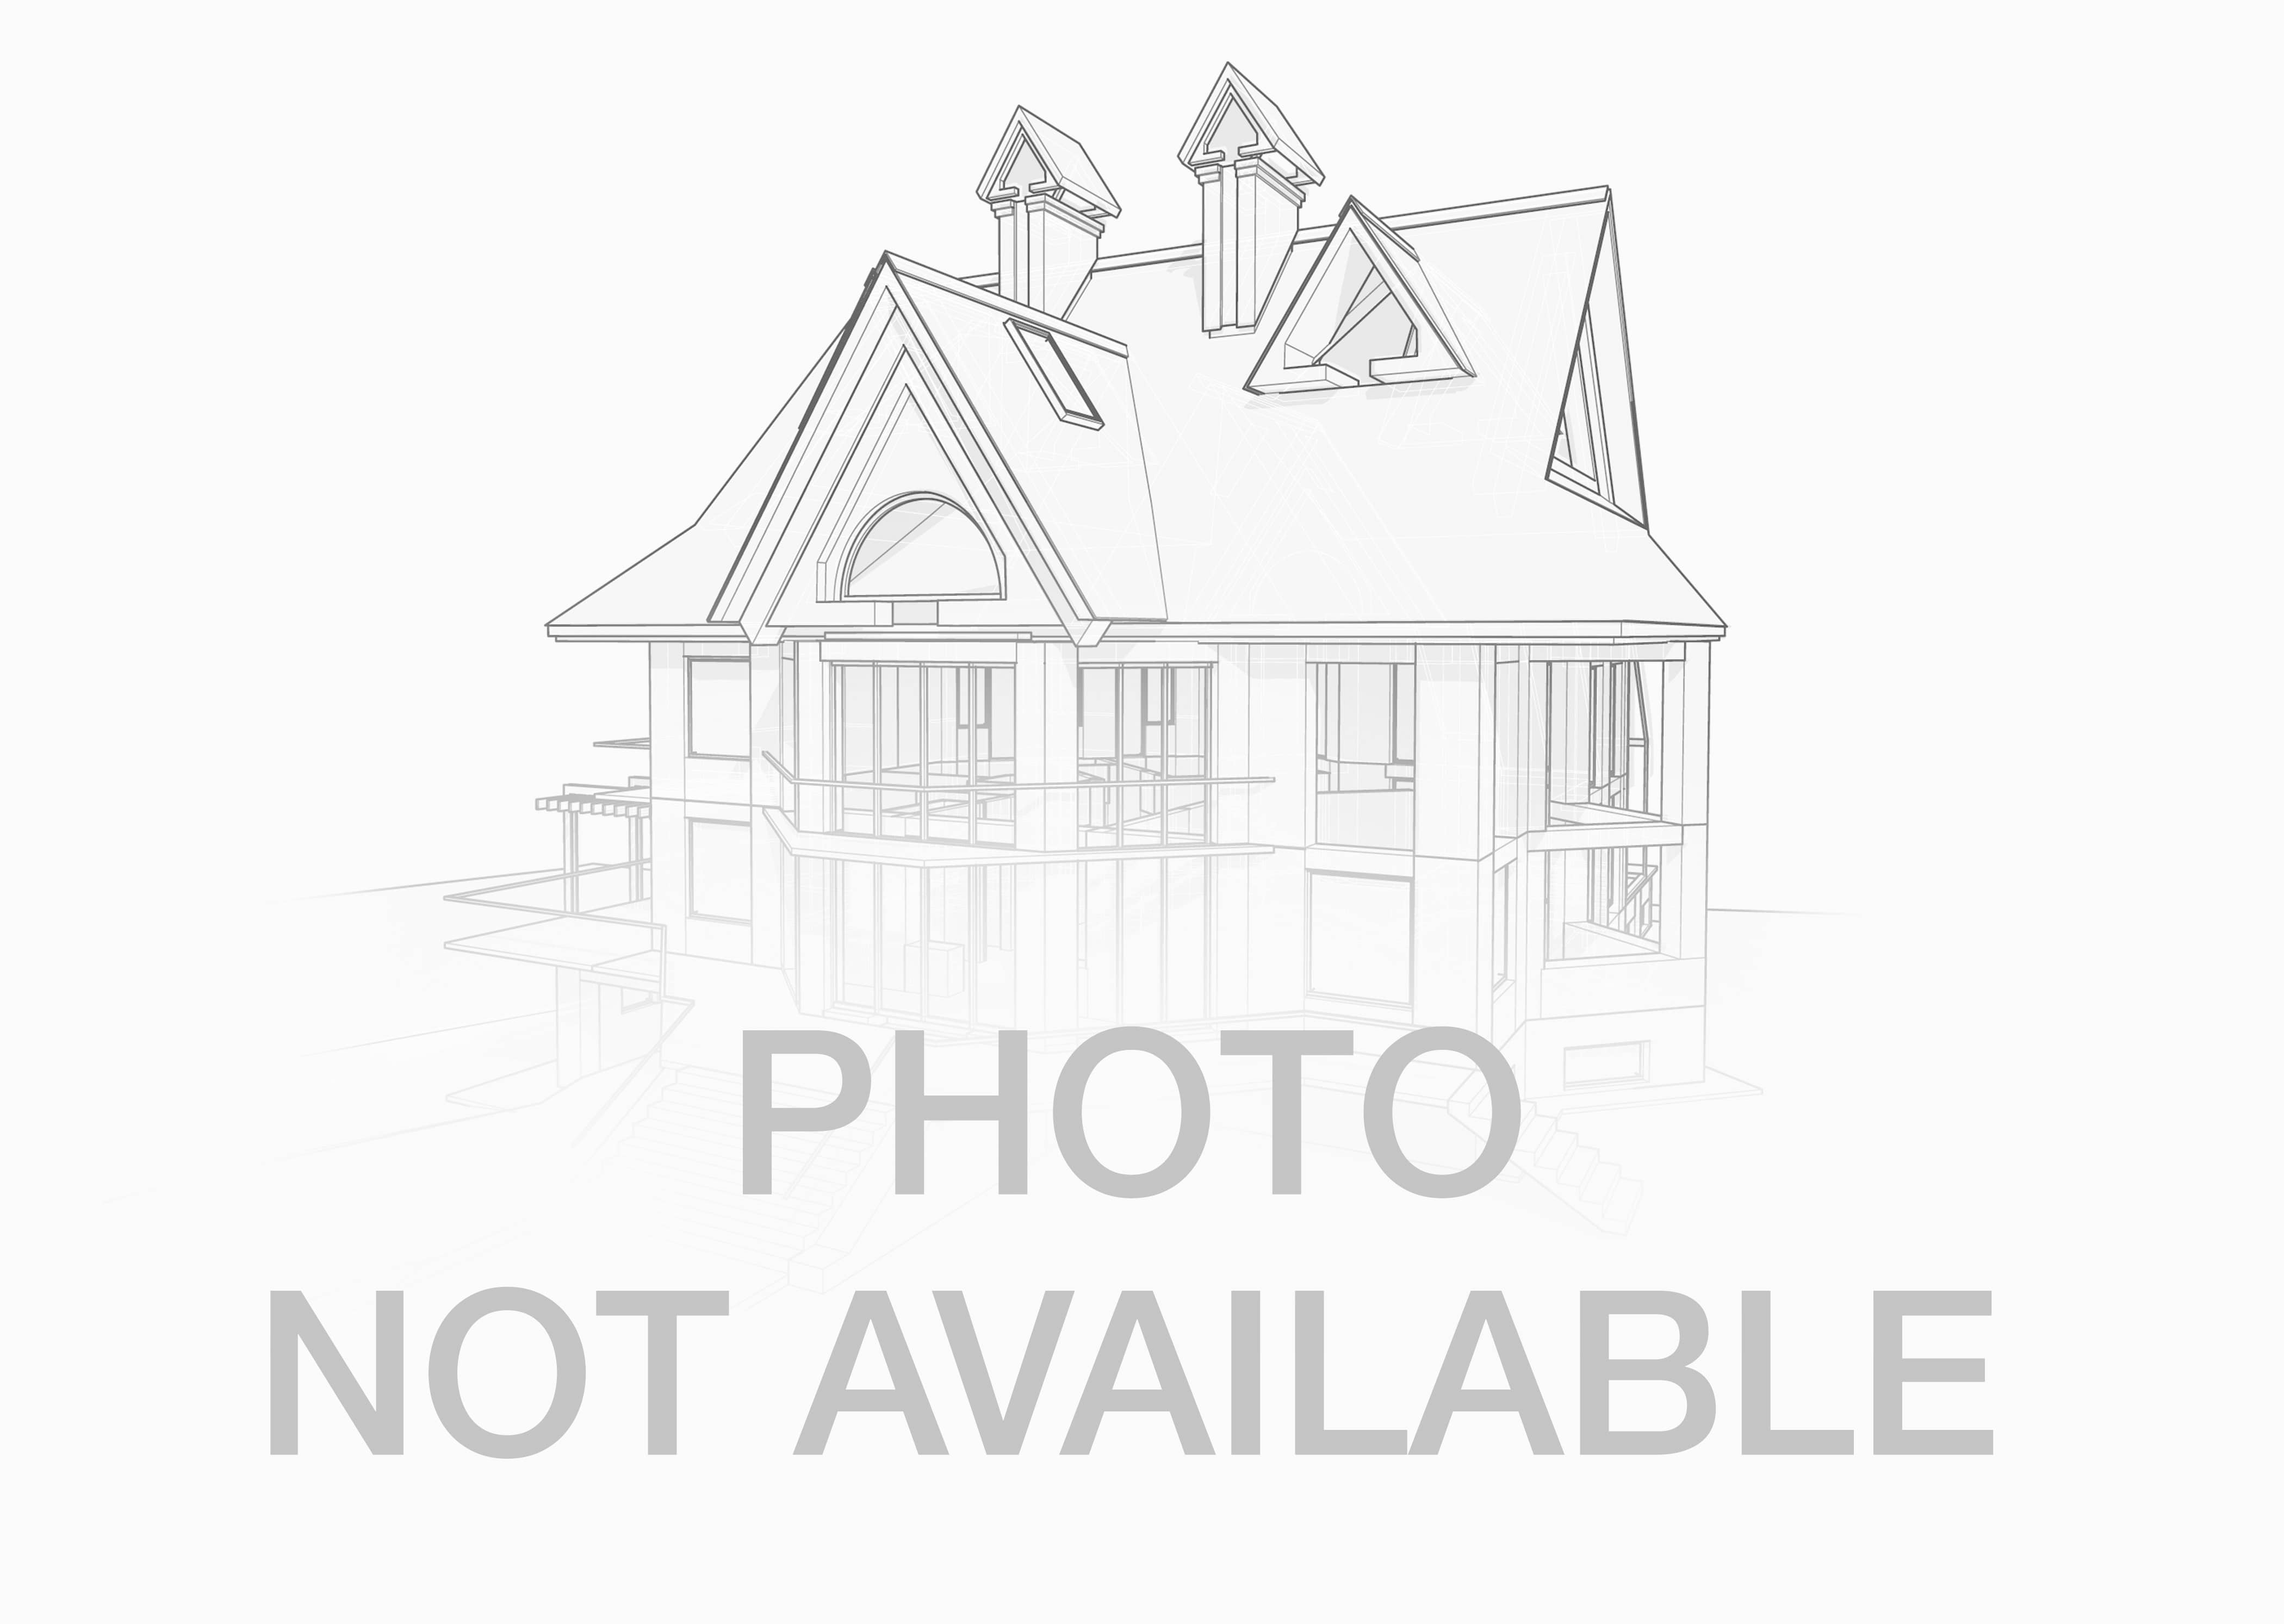 bergton single personals Real estate and homes for sale in bergton, va on oodle classifieds join millions of people using oodle to find local real estate listings, homes for sales, condos.